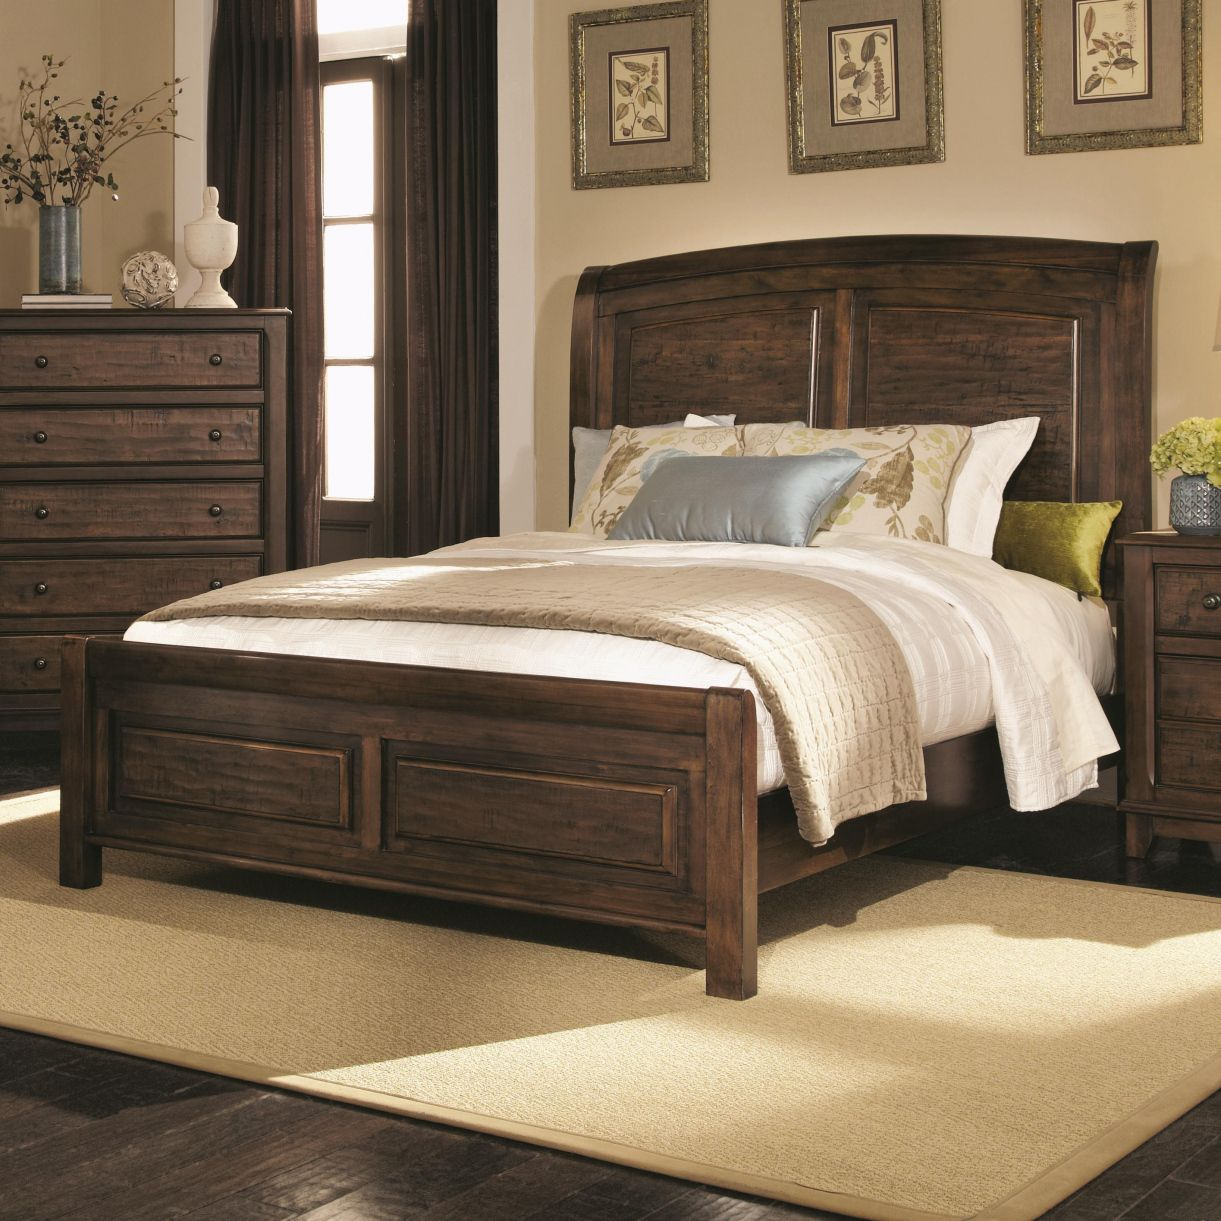 Sell Used Bedroom Furniture  Interior Designs For Bedrooms Check Mesmerizing Used Bedroom Furniture Inspiration Design